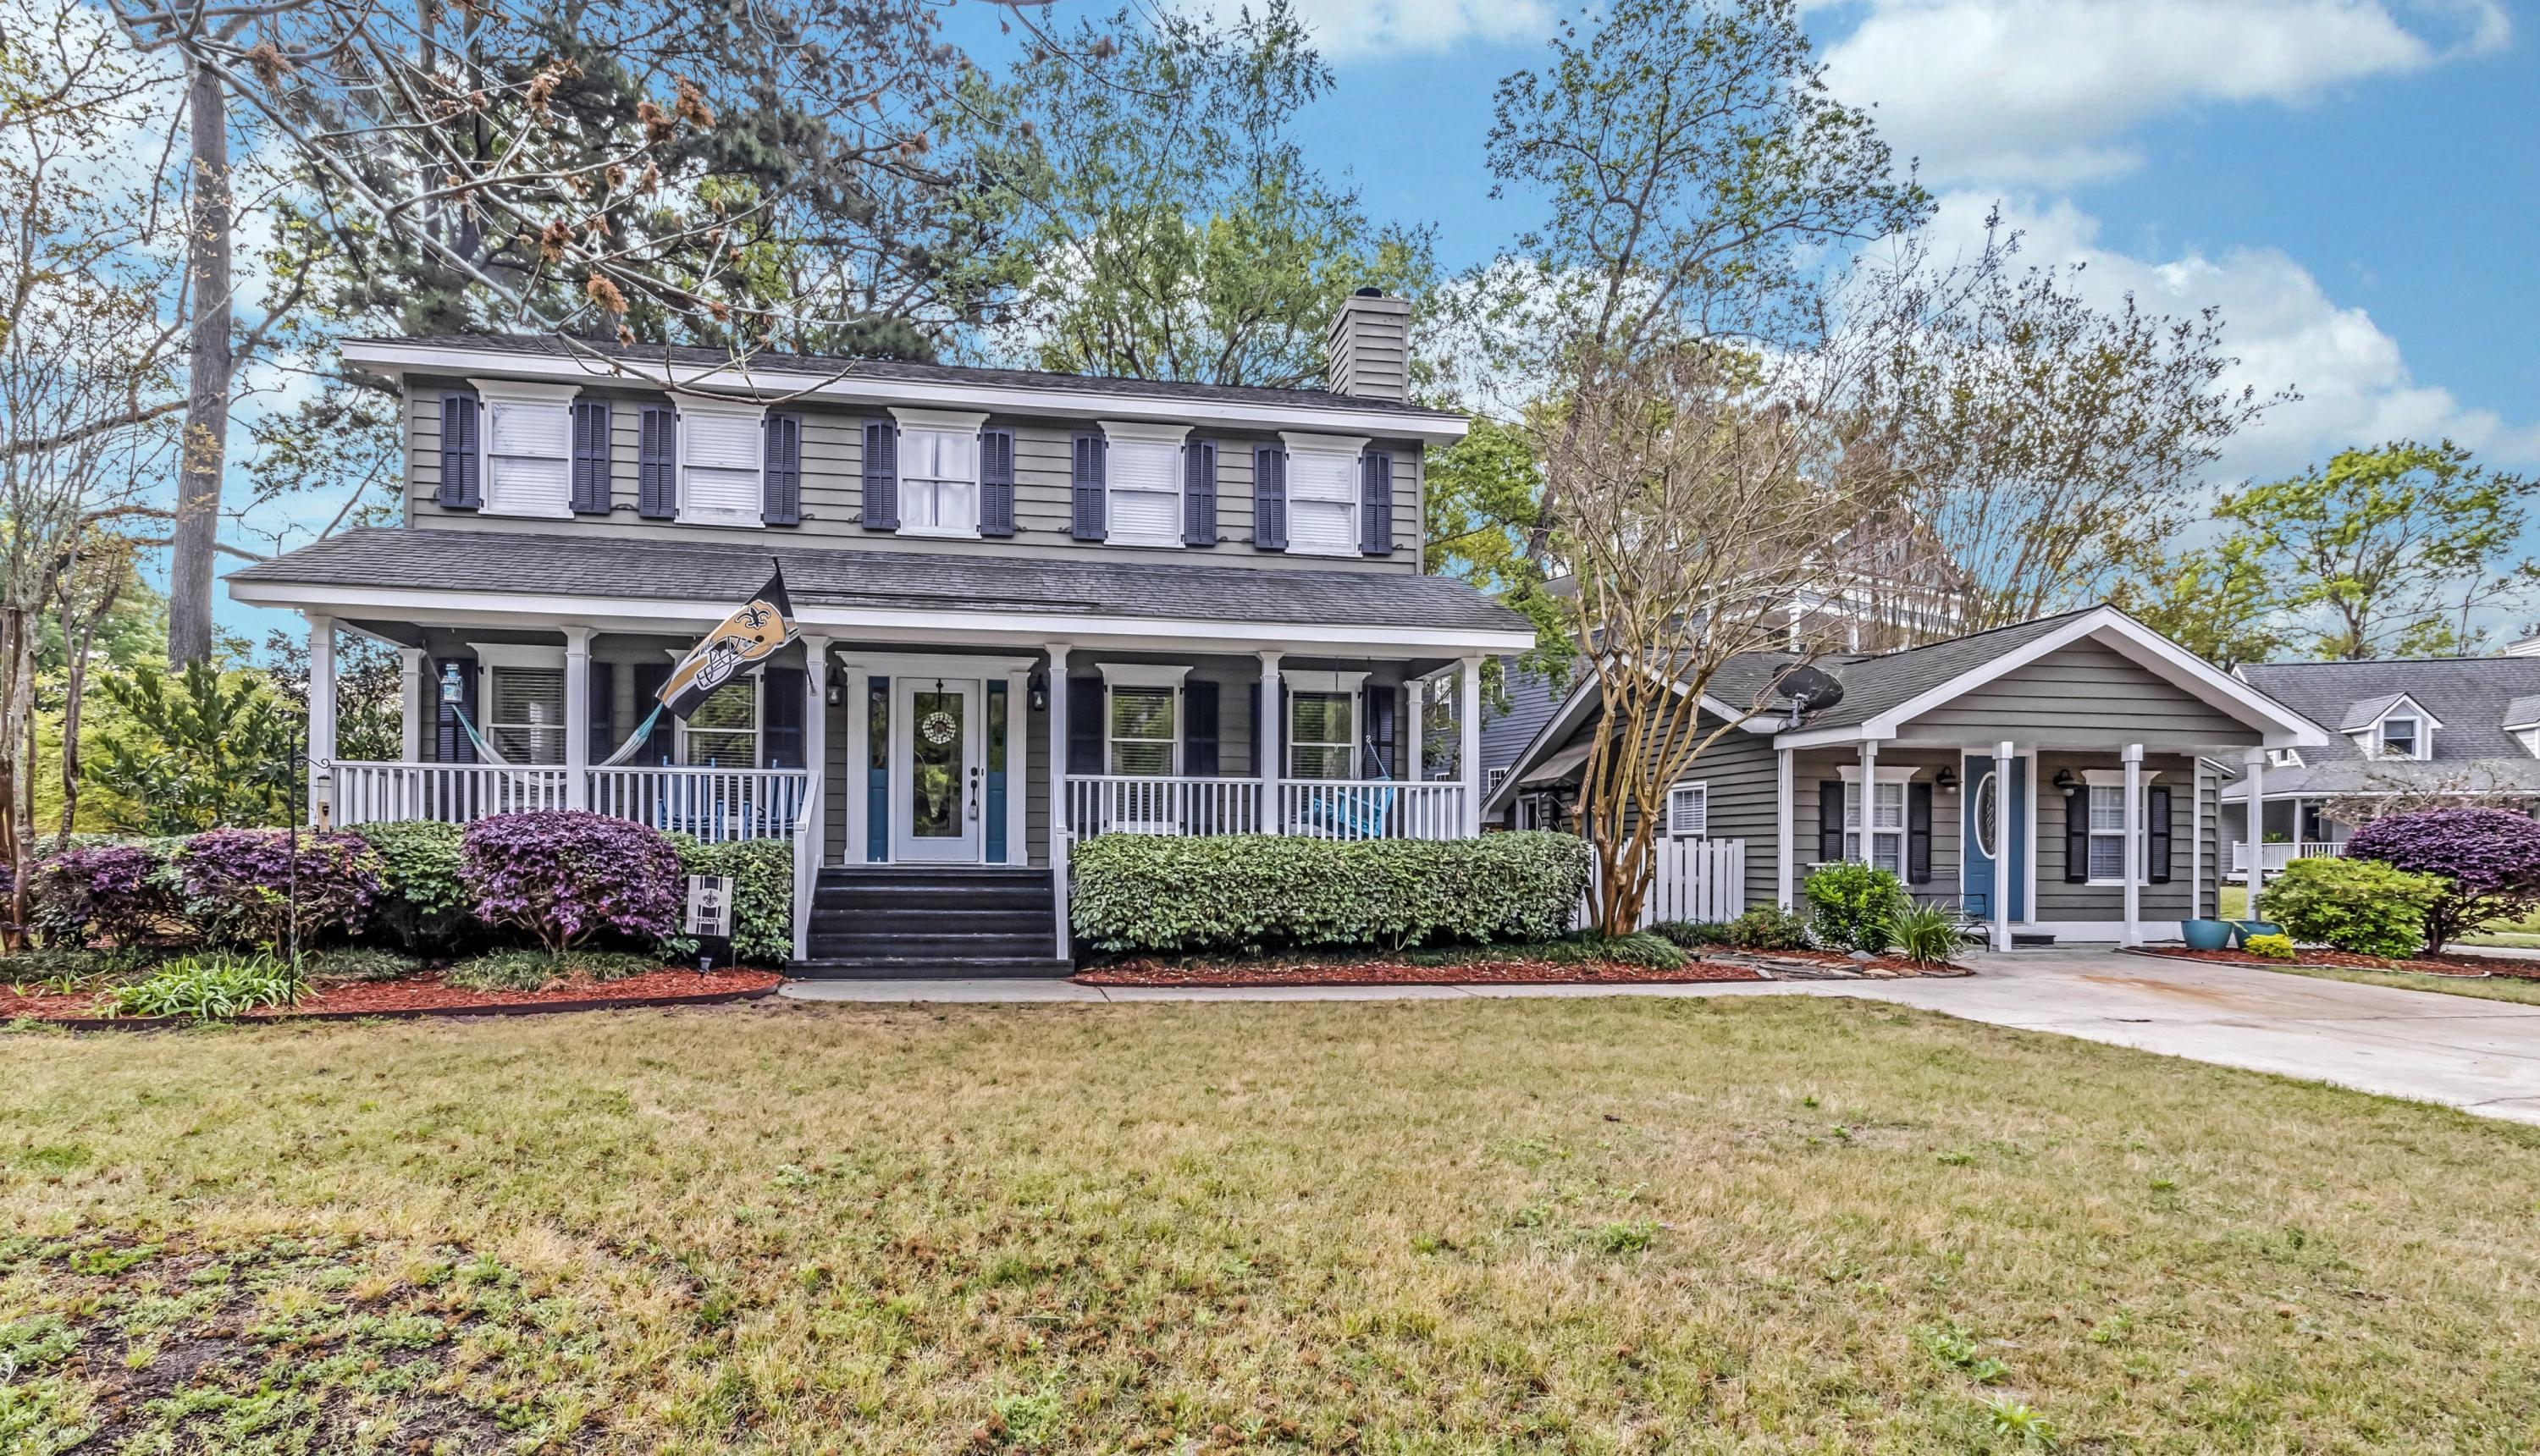 Wakendaw On The Creek Homes For Sale - 613 Oak Marsh, Mount Pleasant, SC - 0